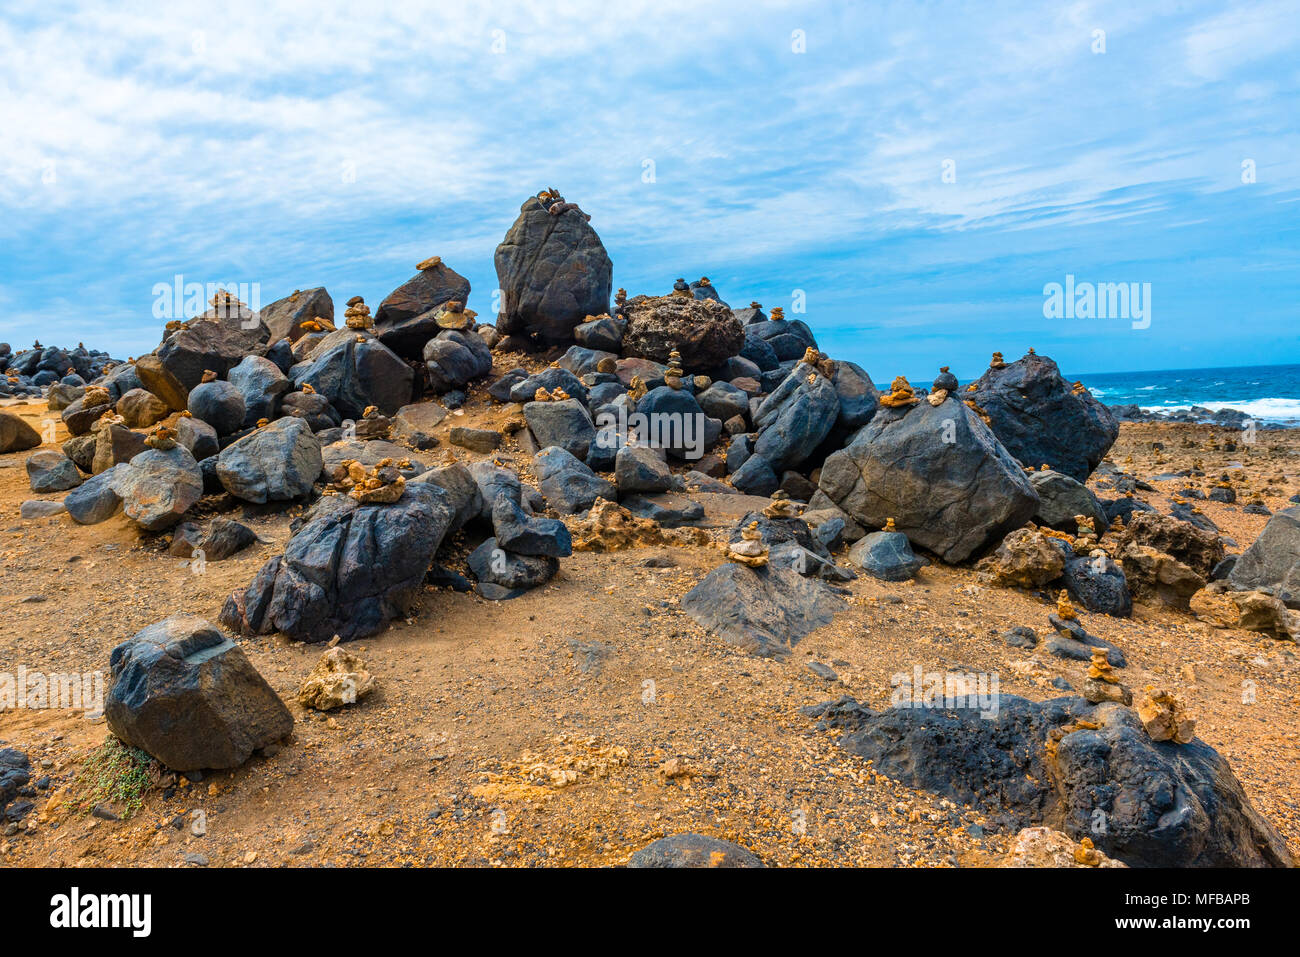 Large rocks topped with mementos cover a beach in Aruba. - Stock Image